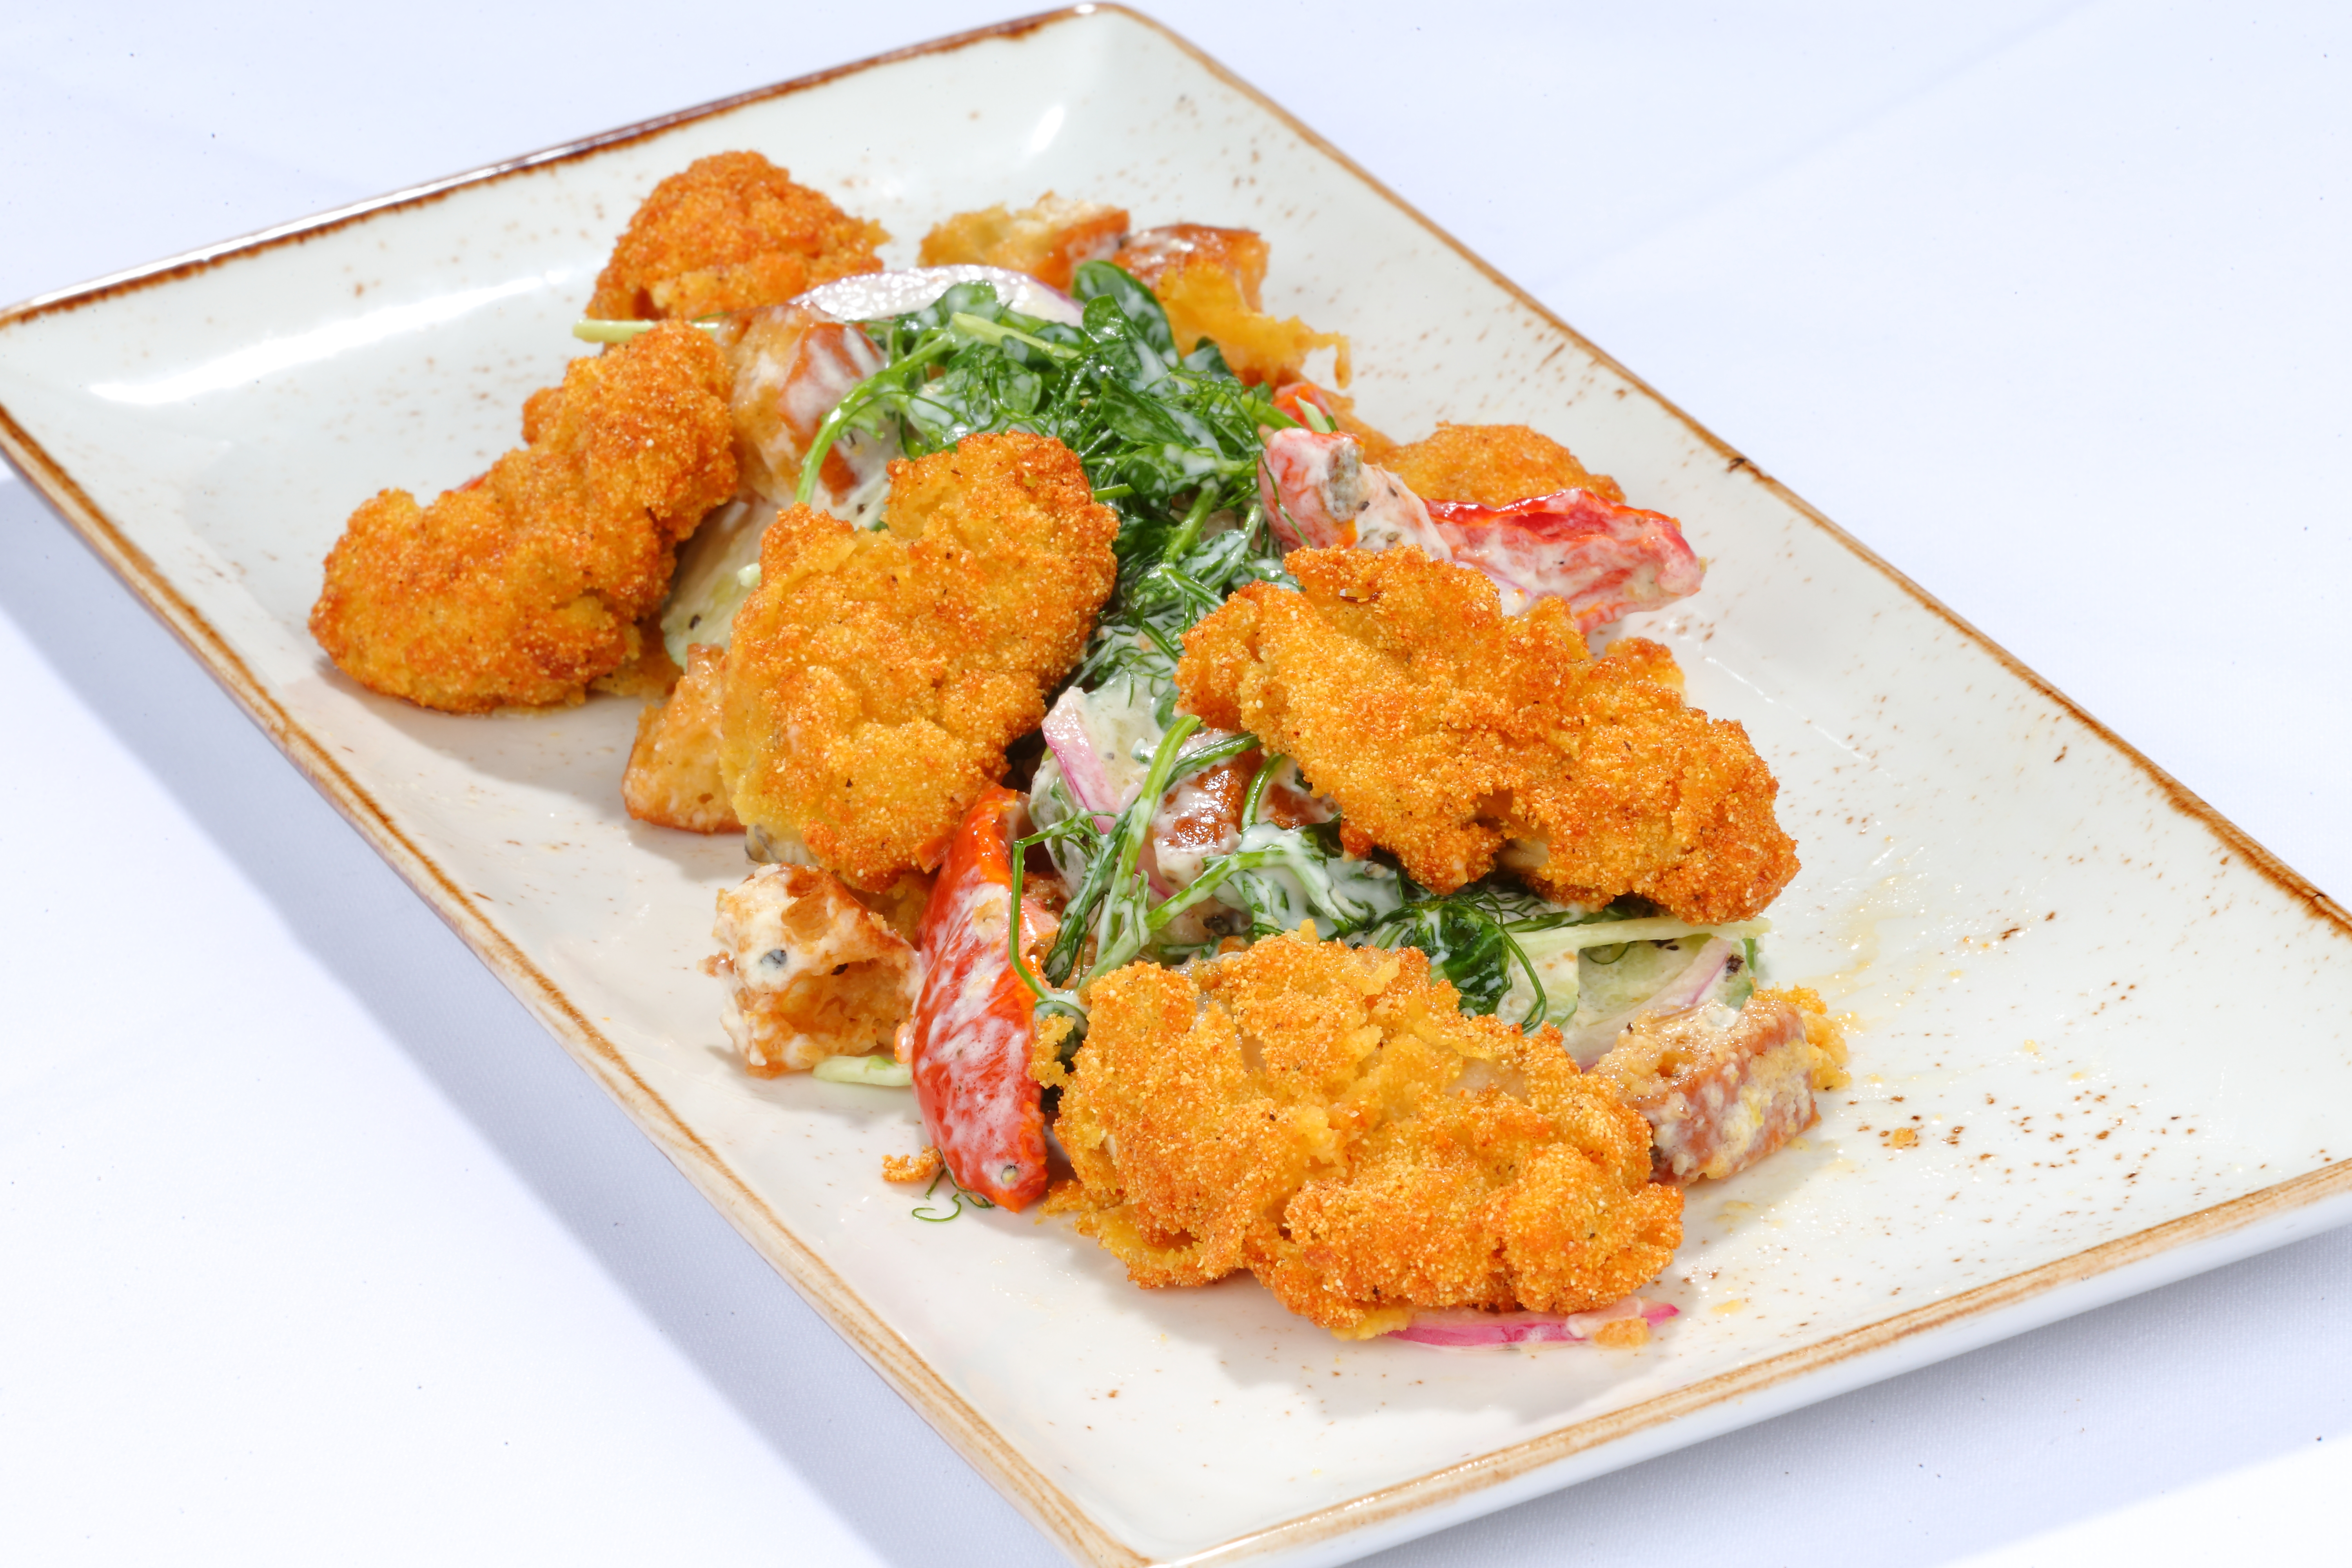 Fried Oysters on a Bed of Salad